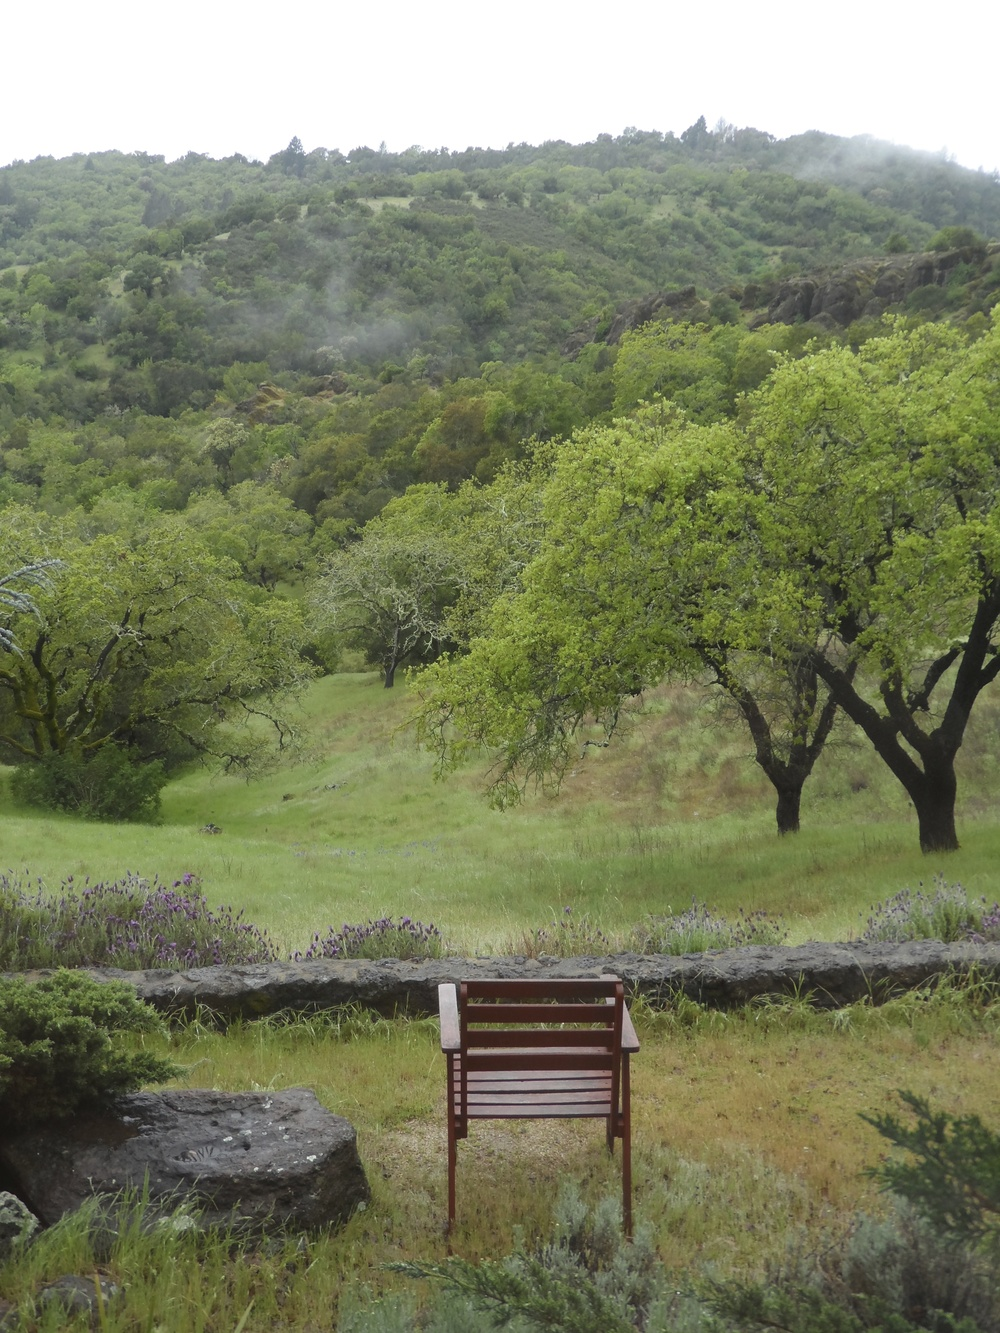 A single chair to observe from, at Sky Farm Hermitage